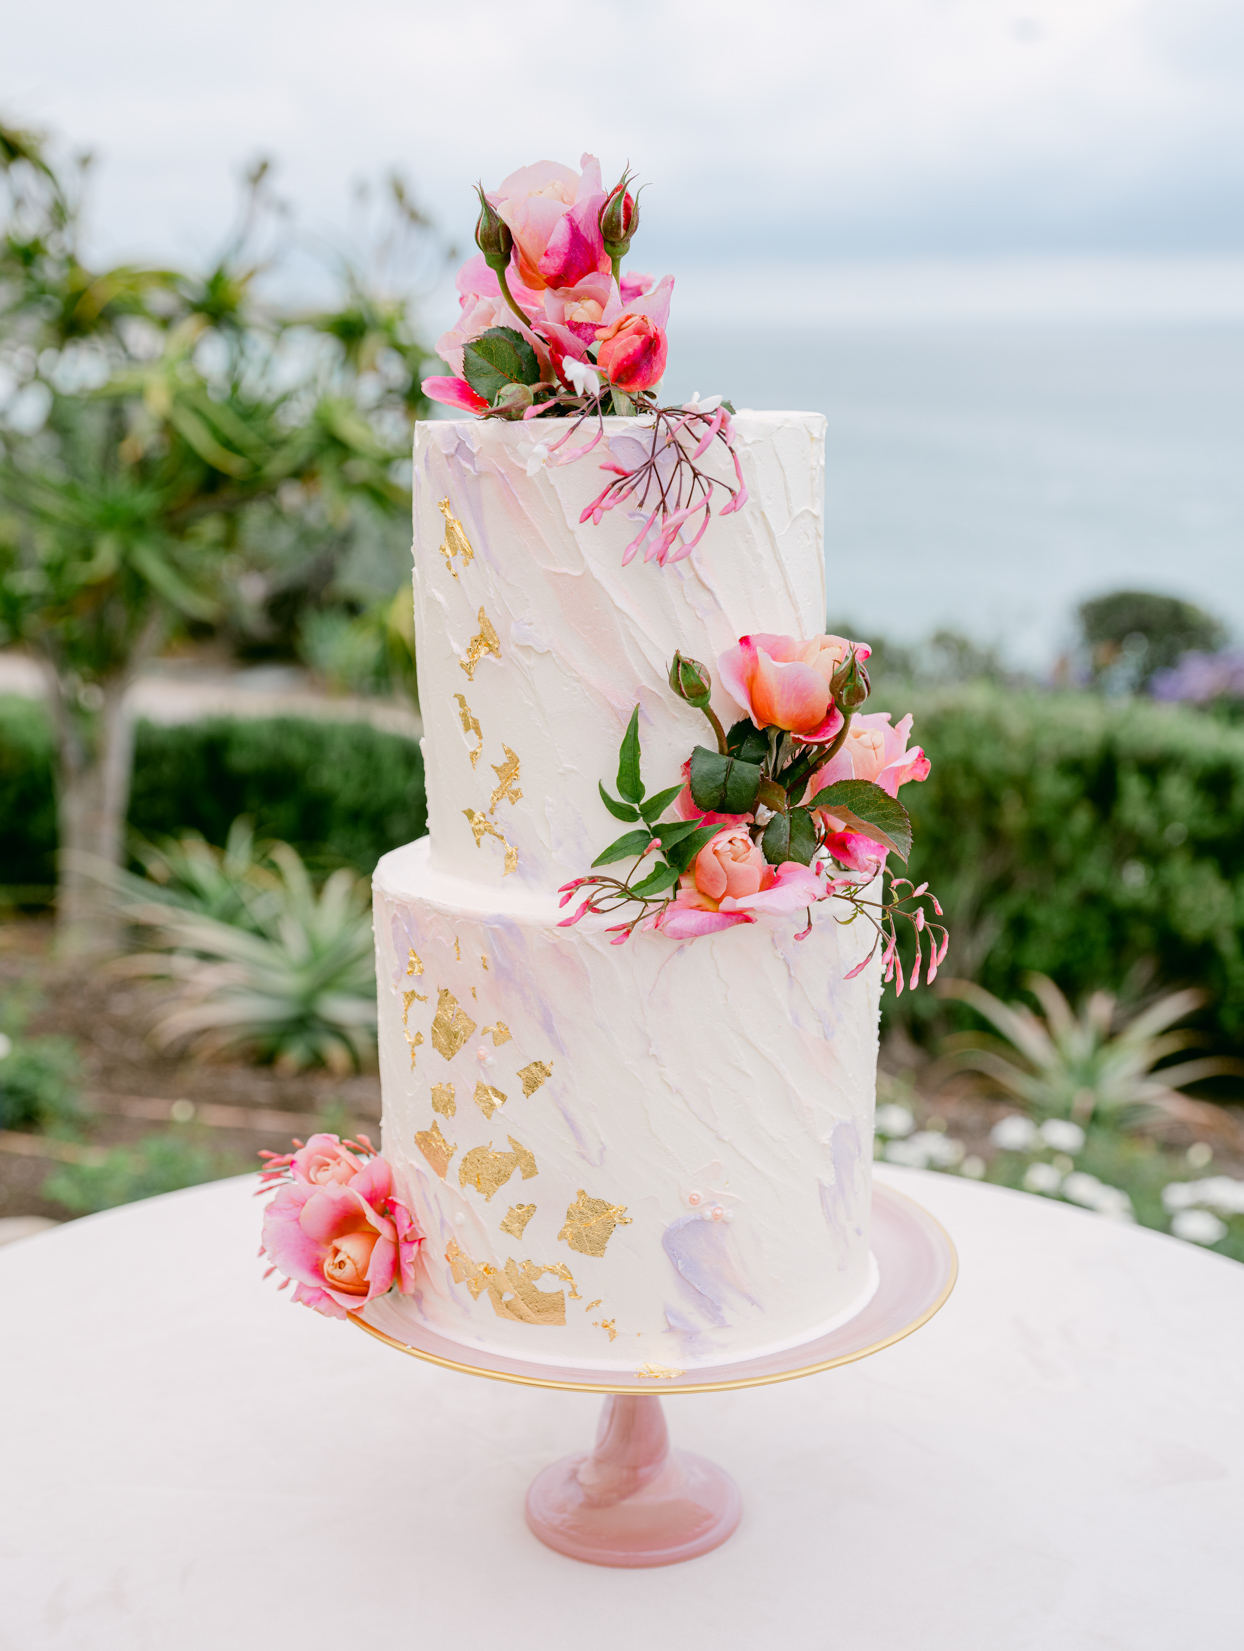 two tiered white frosted gold flake detail pink floral accent wedding cake